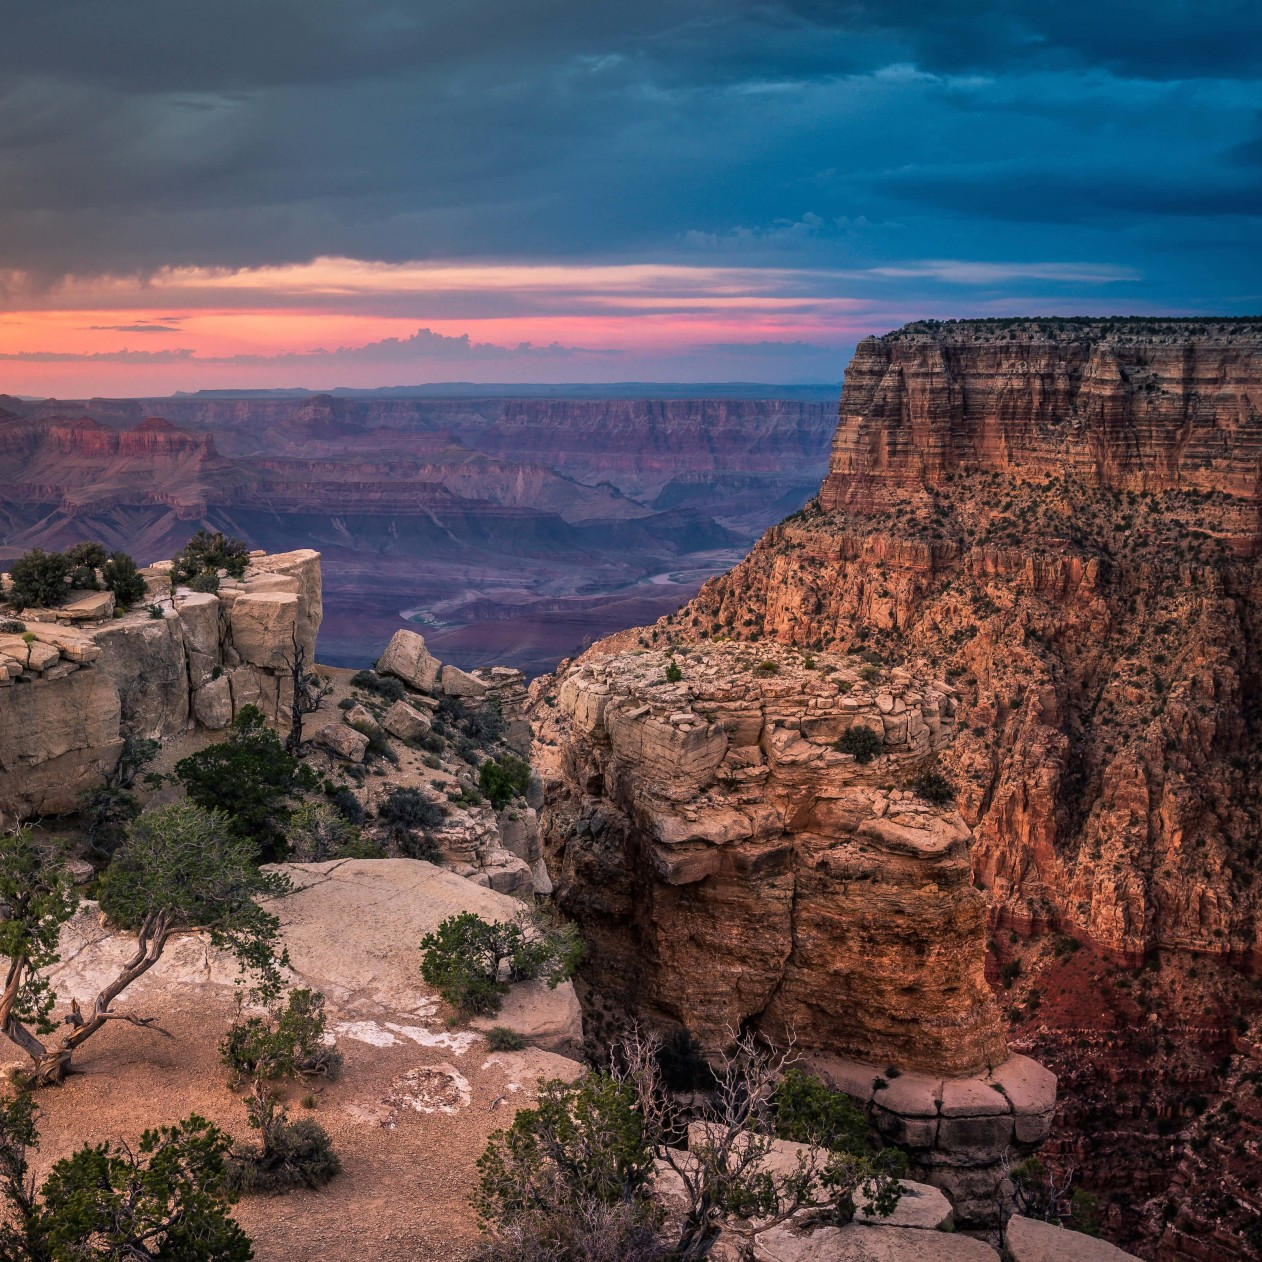 Sunset At The Grand Canyon Wallpaper for Apple iPad mini